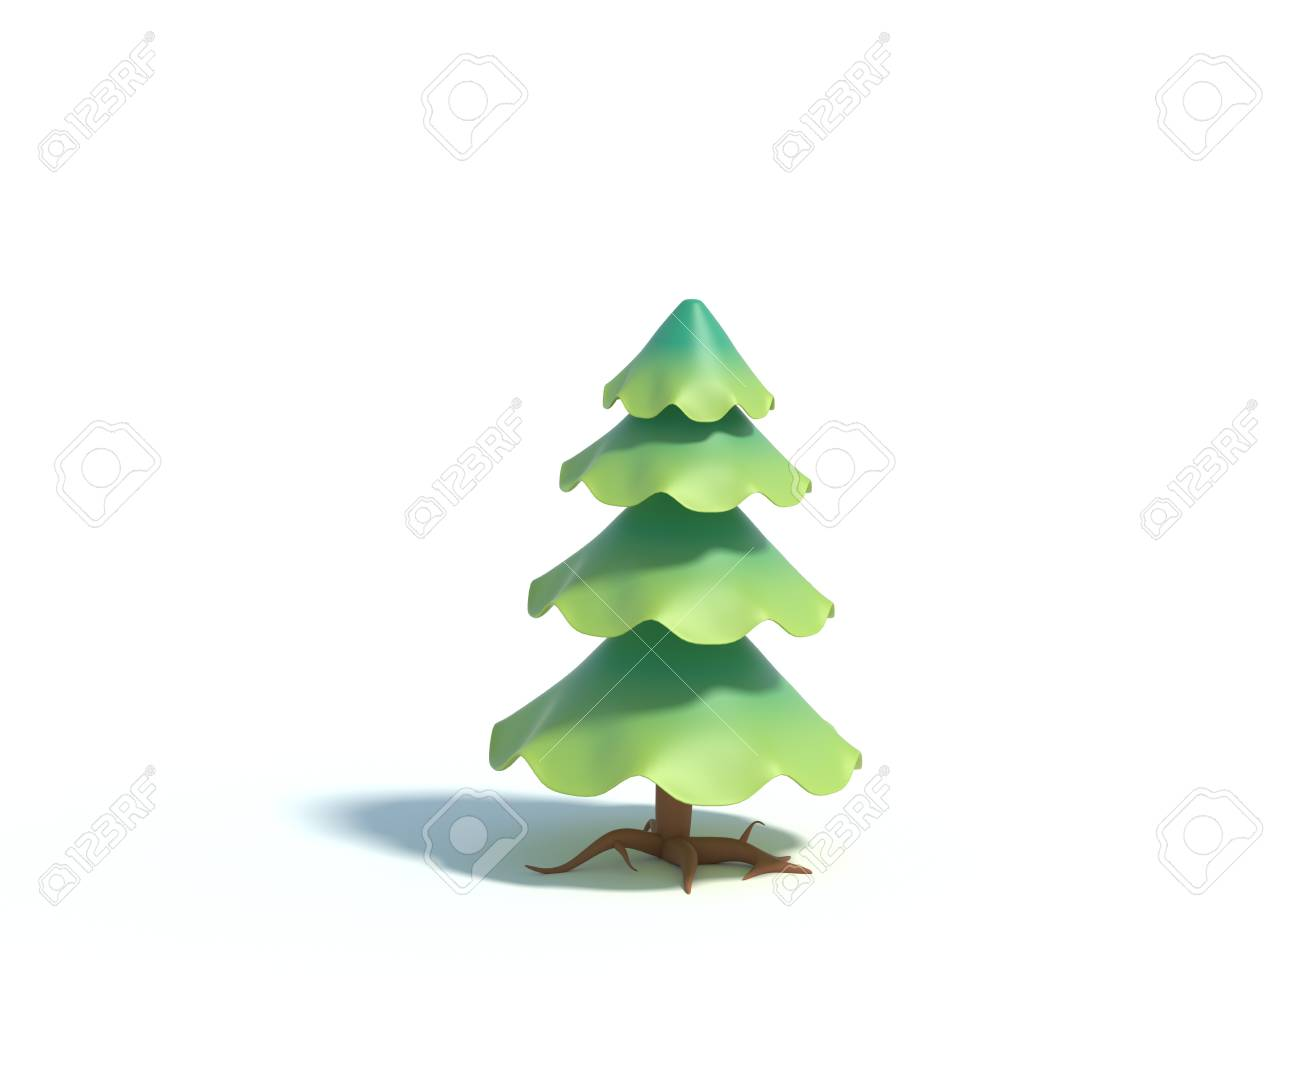 3d Rendering Of Cartoon Fir TreeSimple Green Pine Tree With Shadow Isolated On White